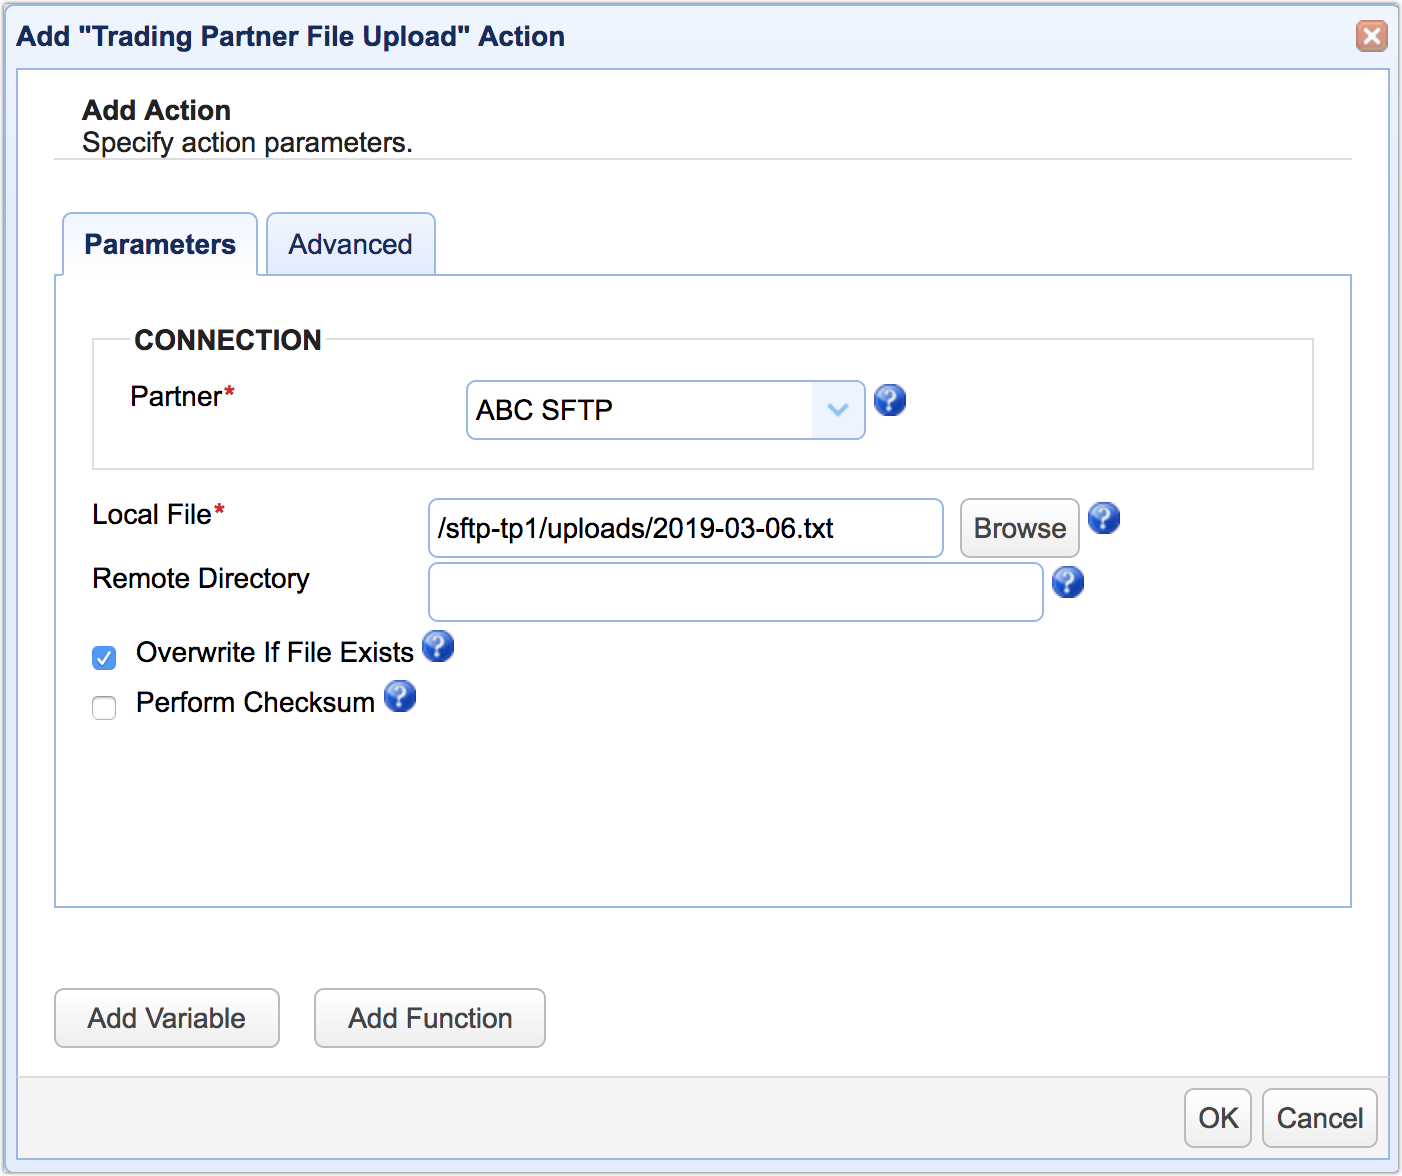 trading partner file upload action mft server 11-1